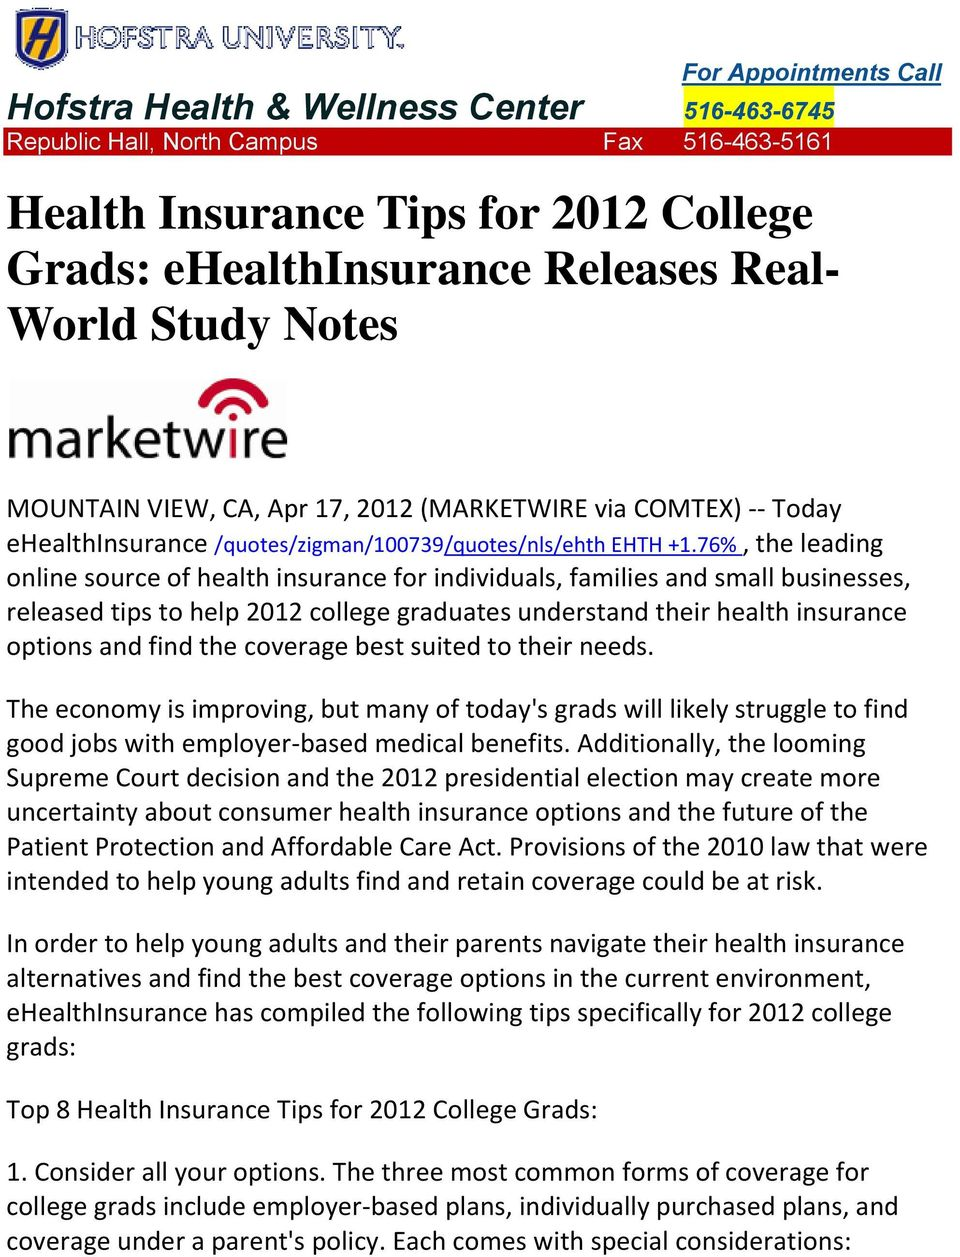 76%, the leading online source of health insurance for individuals, families and small businesses, released tips to help 2012 college graduates understand their health insurance options and find the